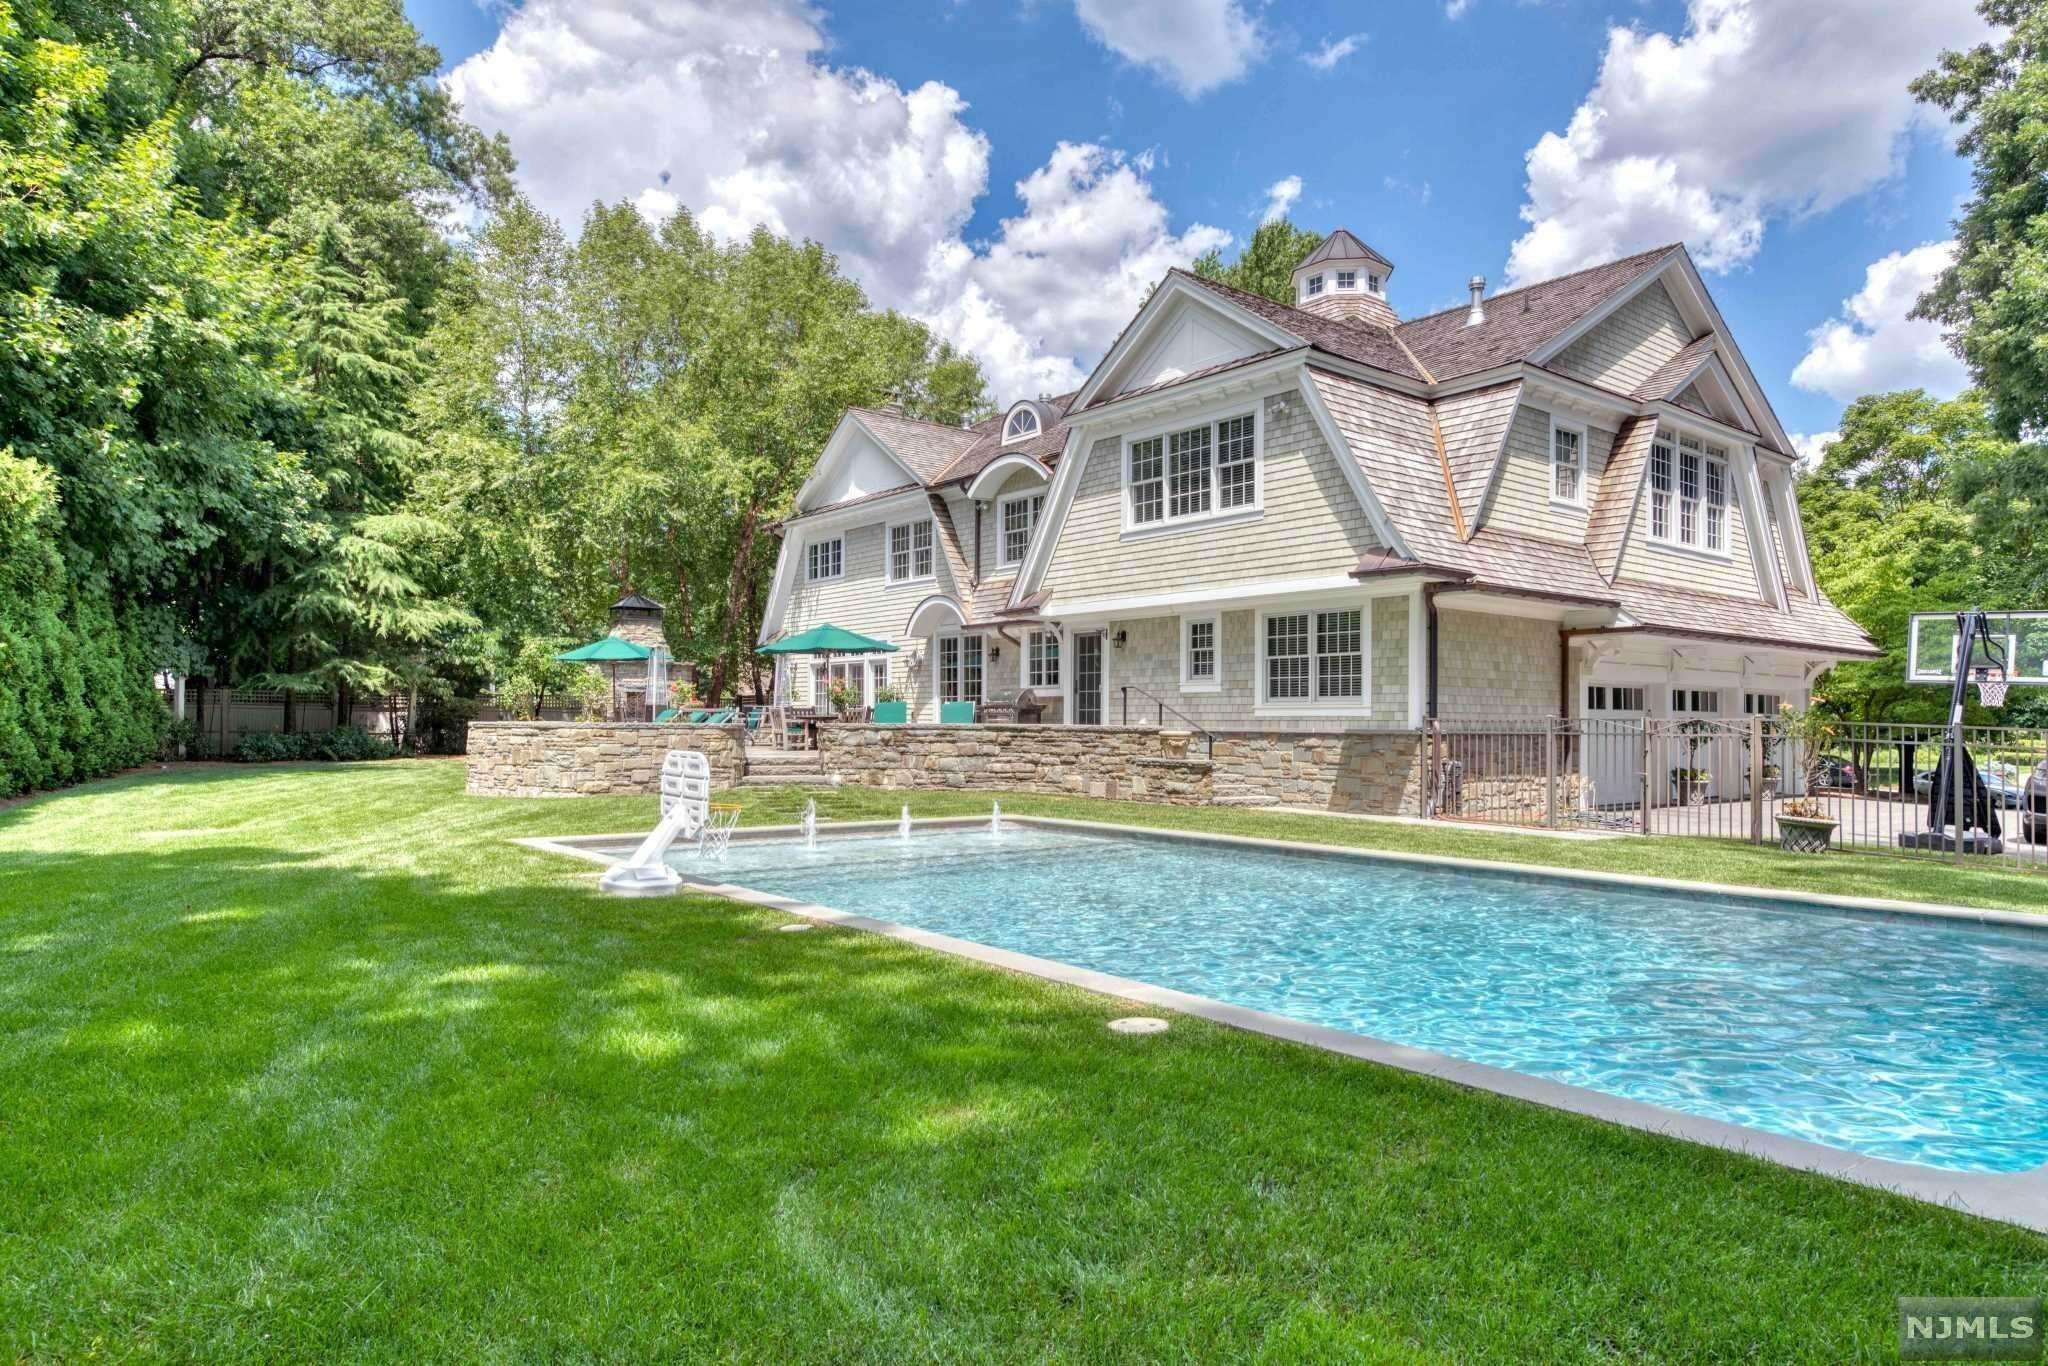 Single Family Home for Sale at 273 Cedar Court Wyckoff, New Jersey, 07481 United States